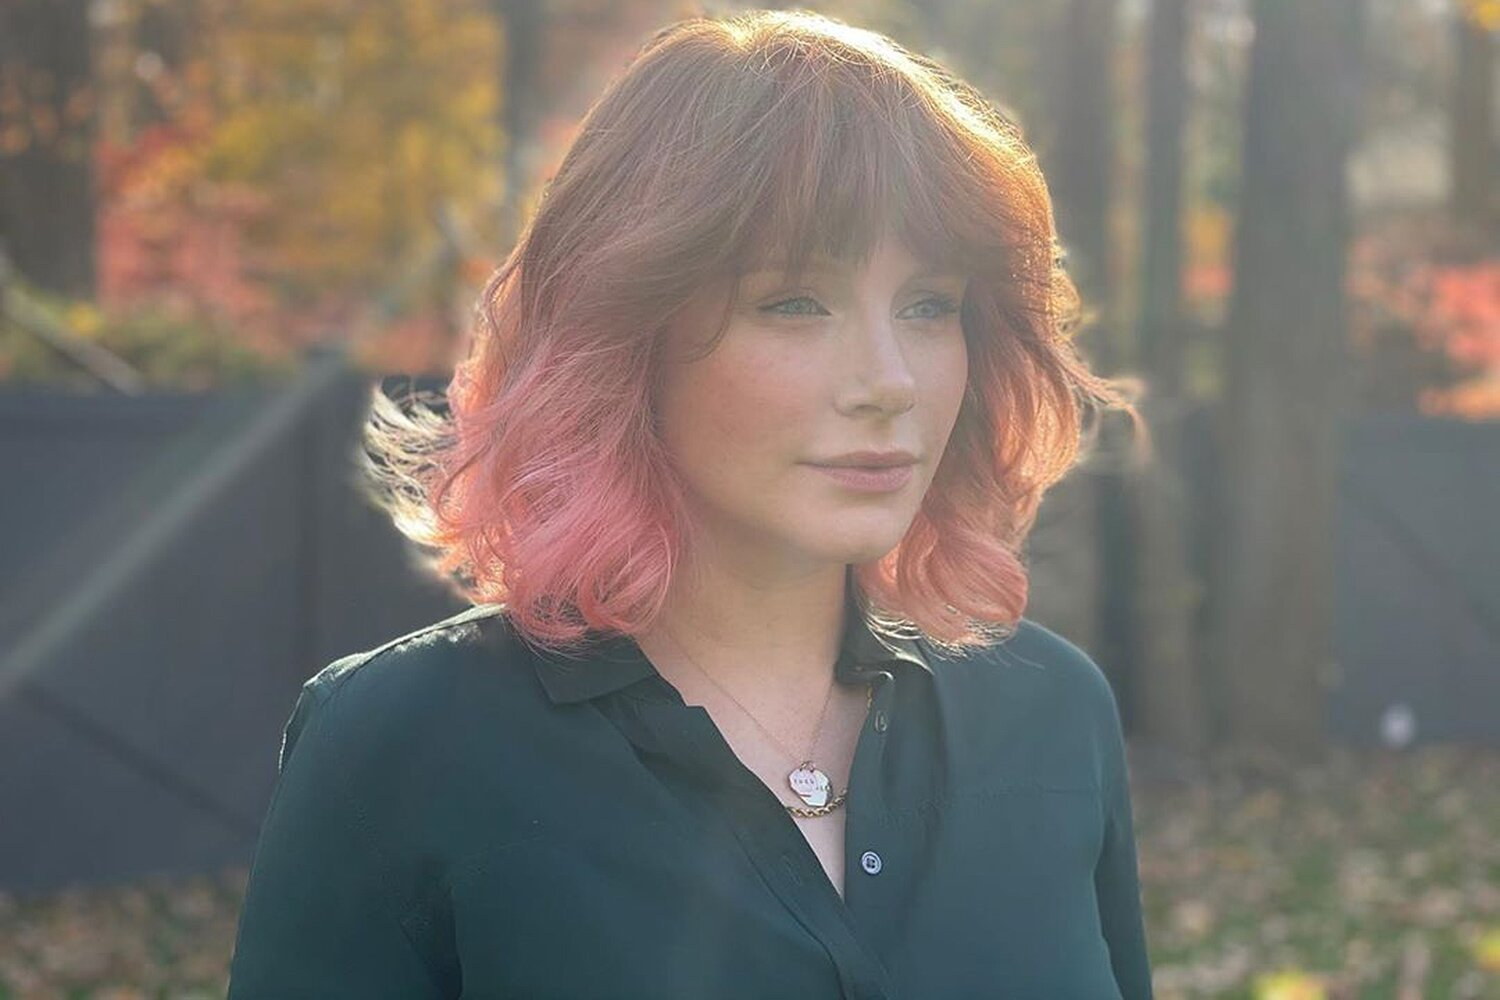 Bryce Dallas Howard Cuts And Dyes Hair Pink To Mark End Of Jurassic World Dominion Shoot People Com The daughter of director ron howard, she made her acting debut in her father's. bryce dallas howard cuts and dyes hair